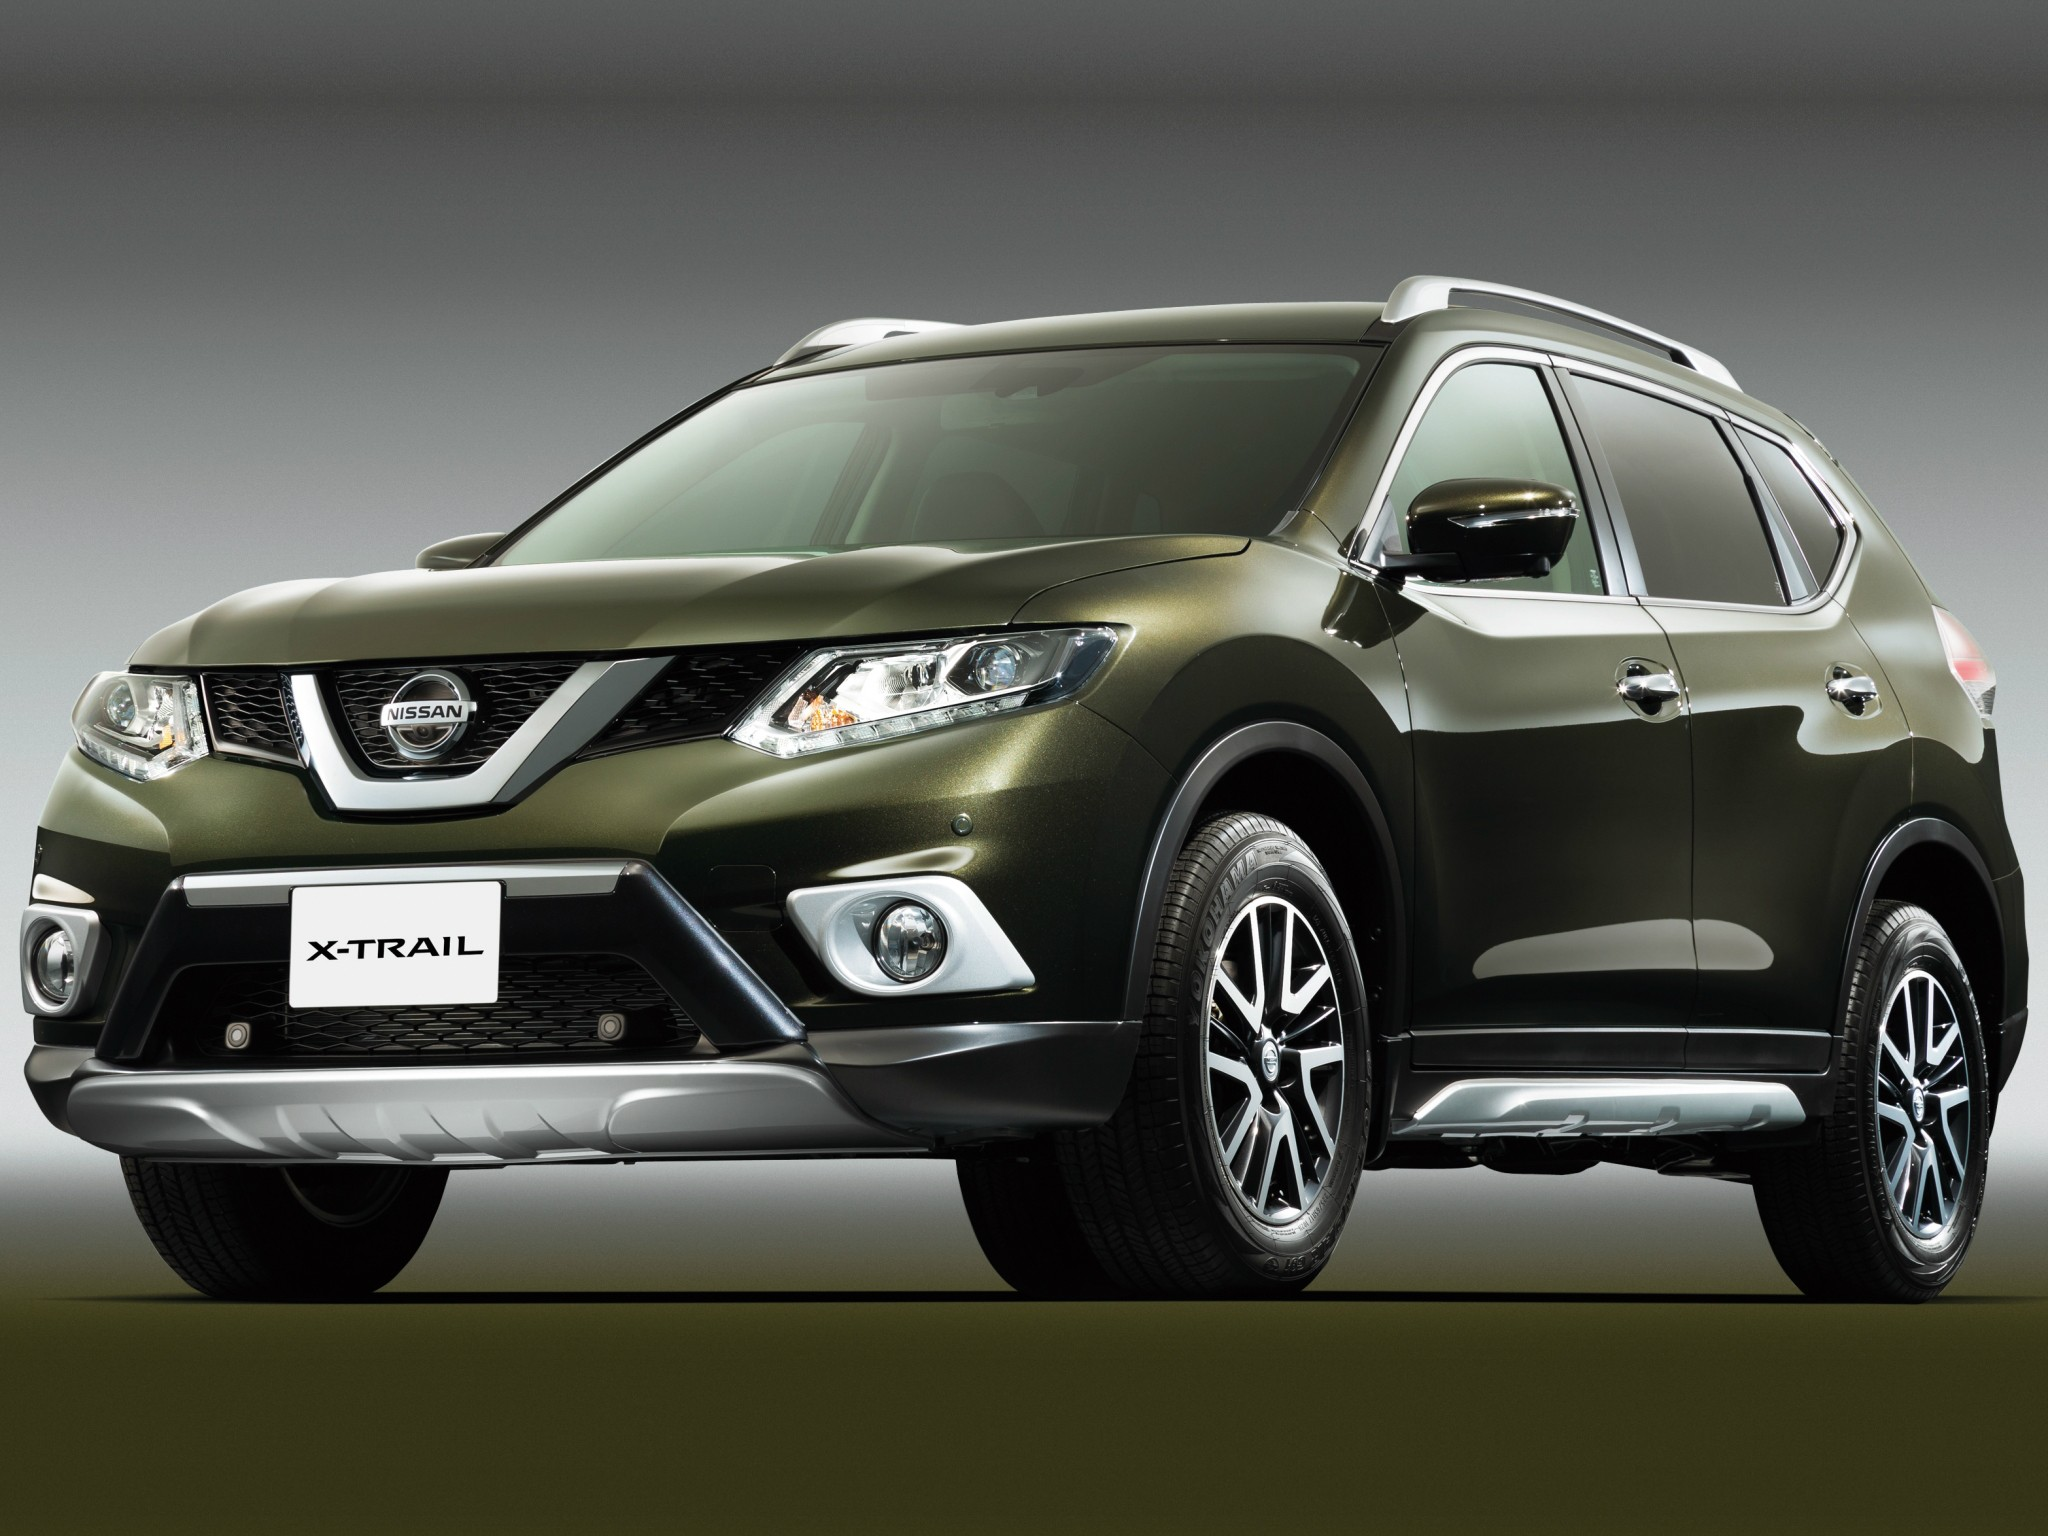 nissan x trail specs 2014 2015 2016 2017 autoevolution. Black Bedroom Furniture Sets. Home Design Ideas